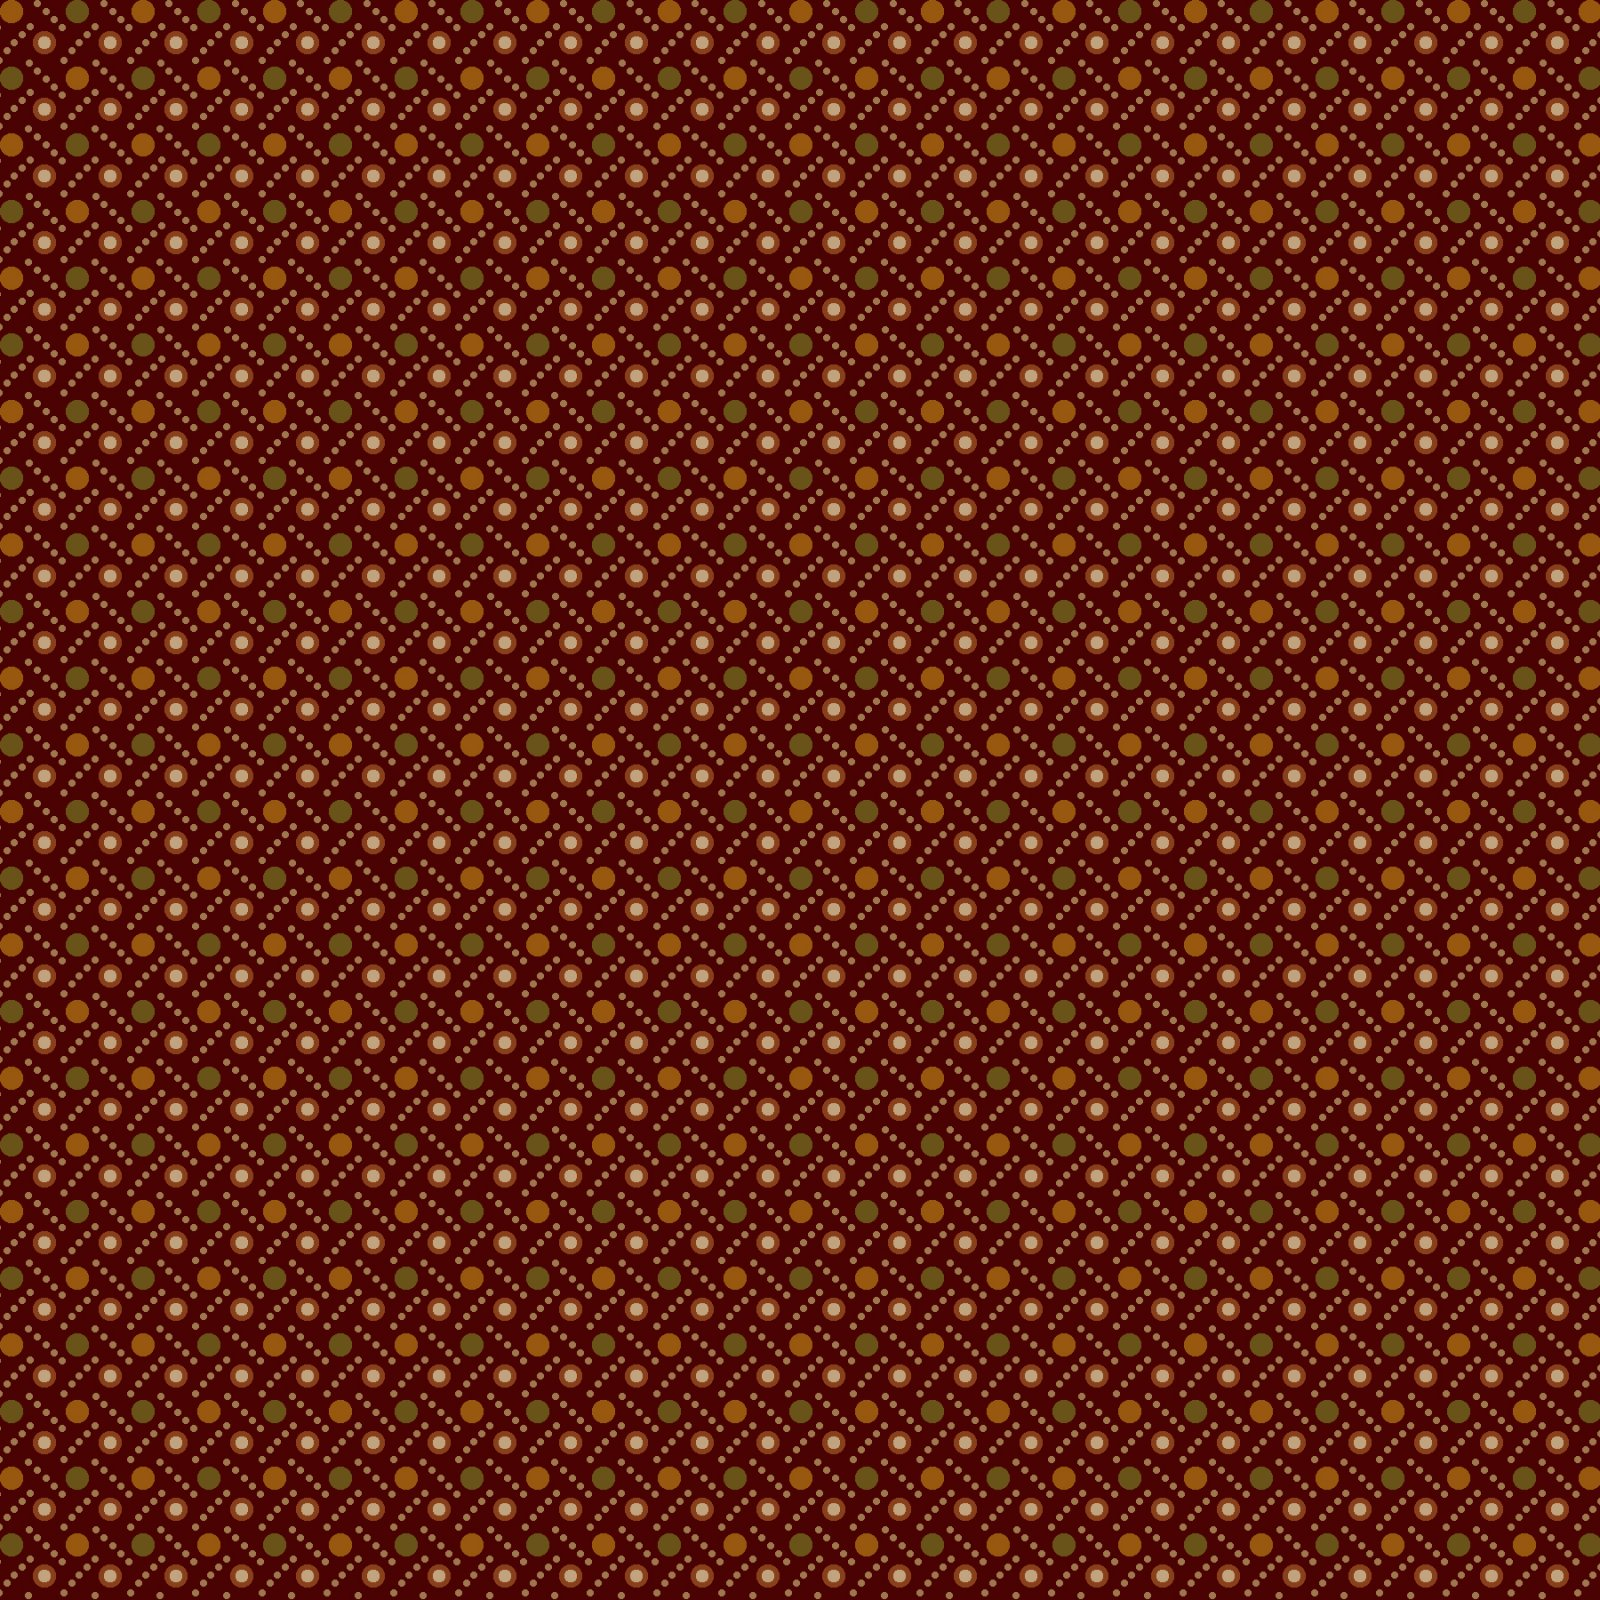 Buttermilk Autumn - 2276-88 * 1/2 yard